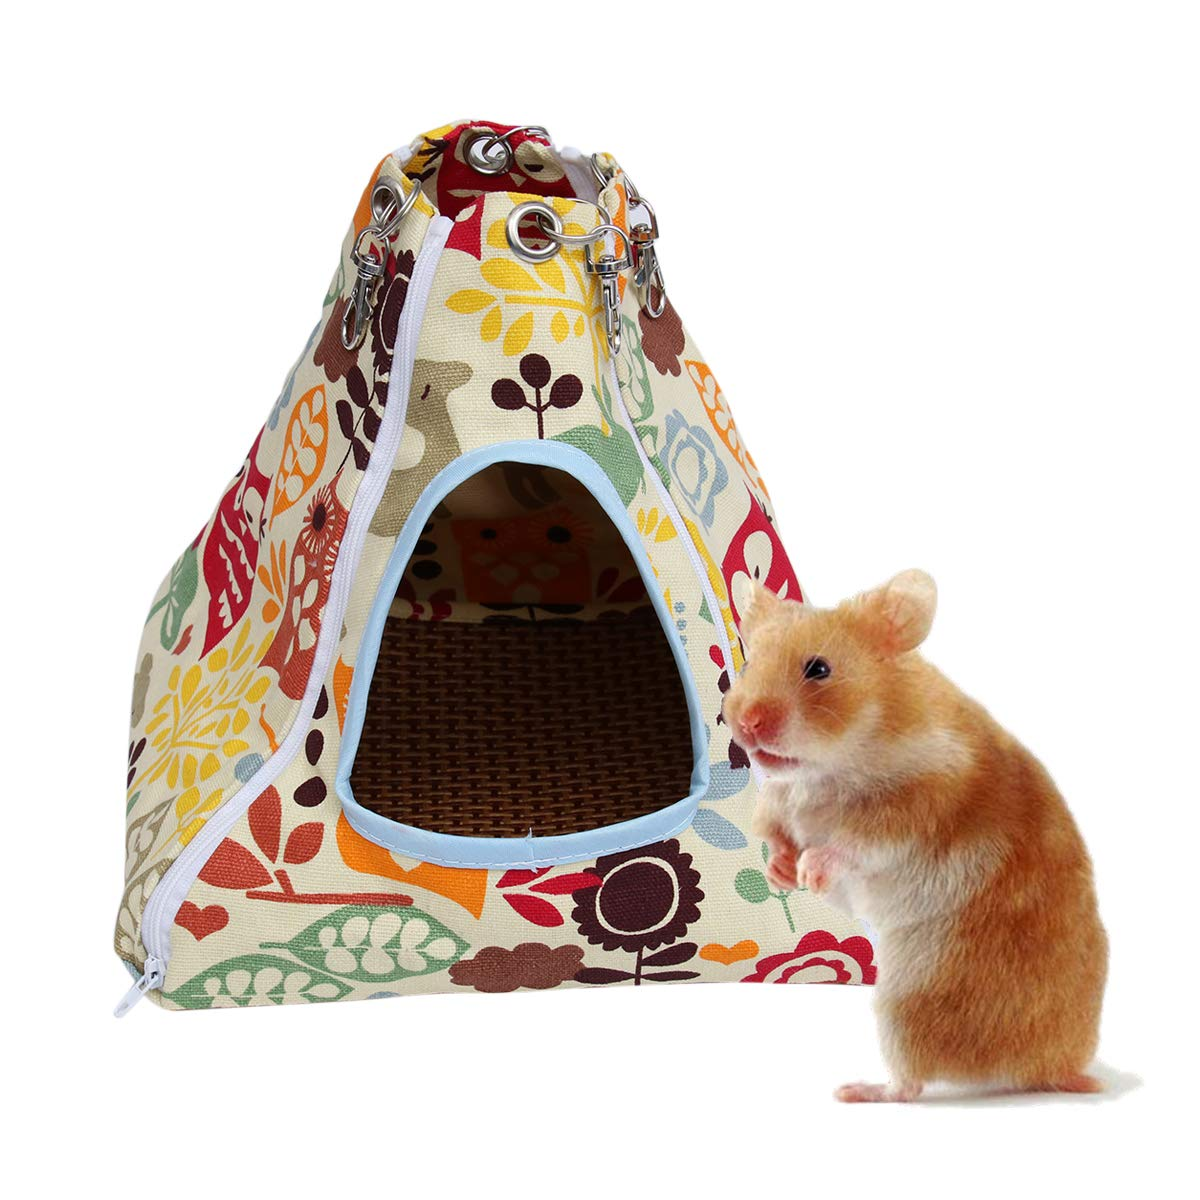 POPETPOP Ferret Hammock Summer-Small Animal Hammock Tent-stype with Cool Pad,Pet Hanging Bed House for Rabbit Rat Hamster Squirrel Chinchilla Guinea Pig Parrot Toys-24x24x24cm